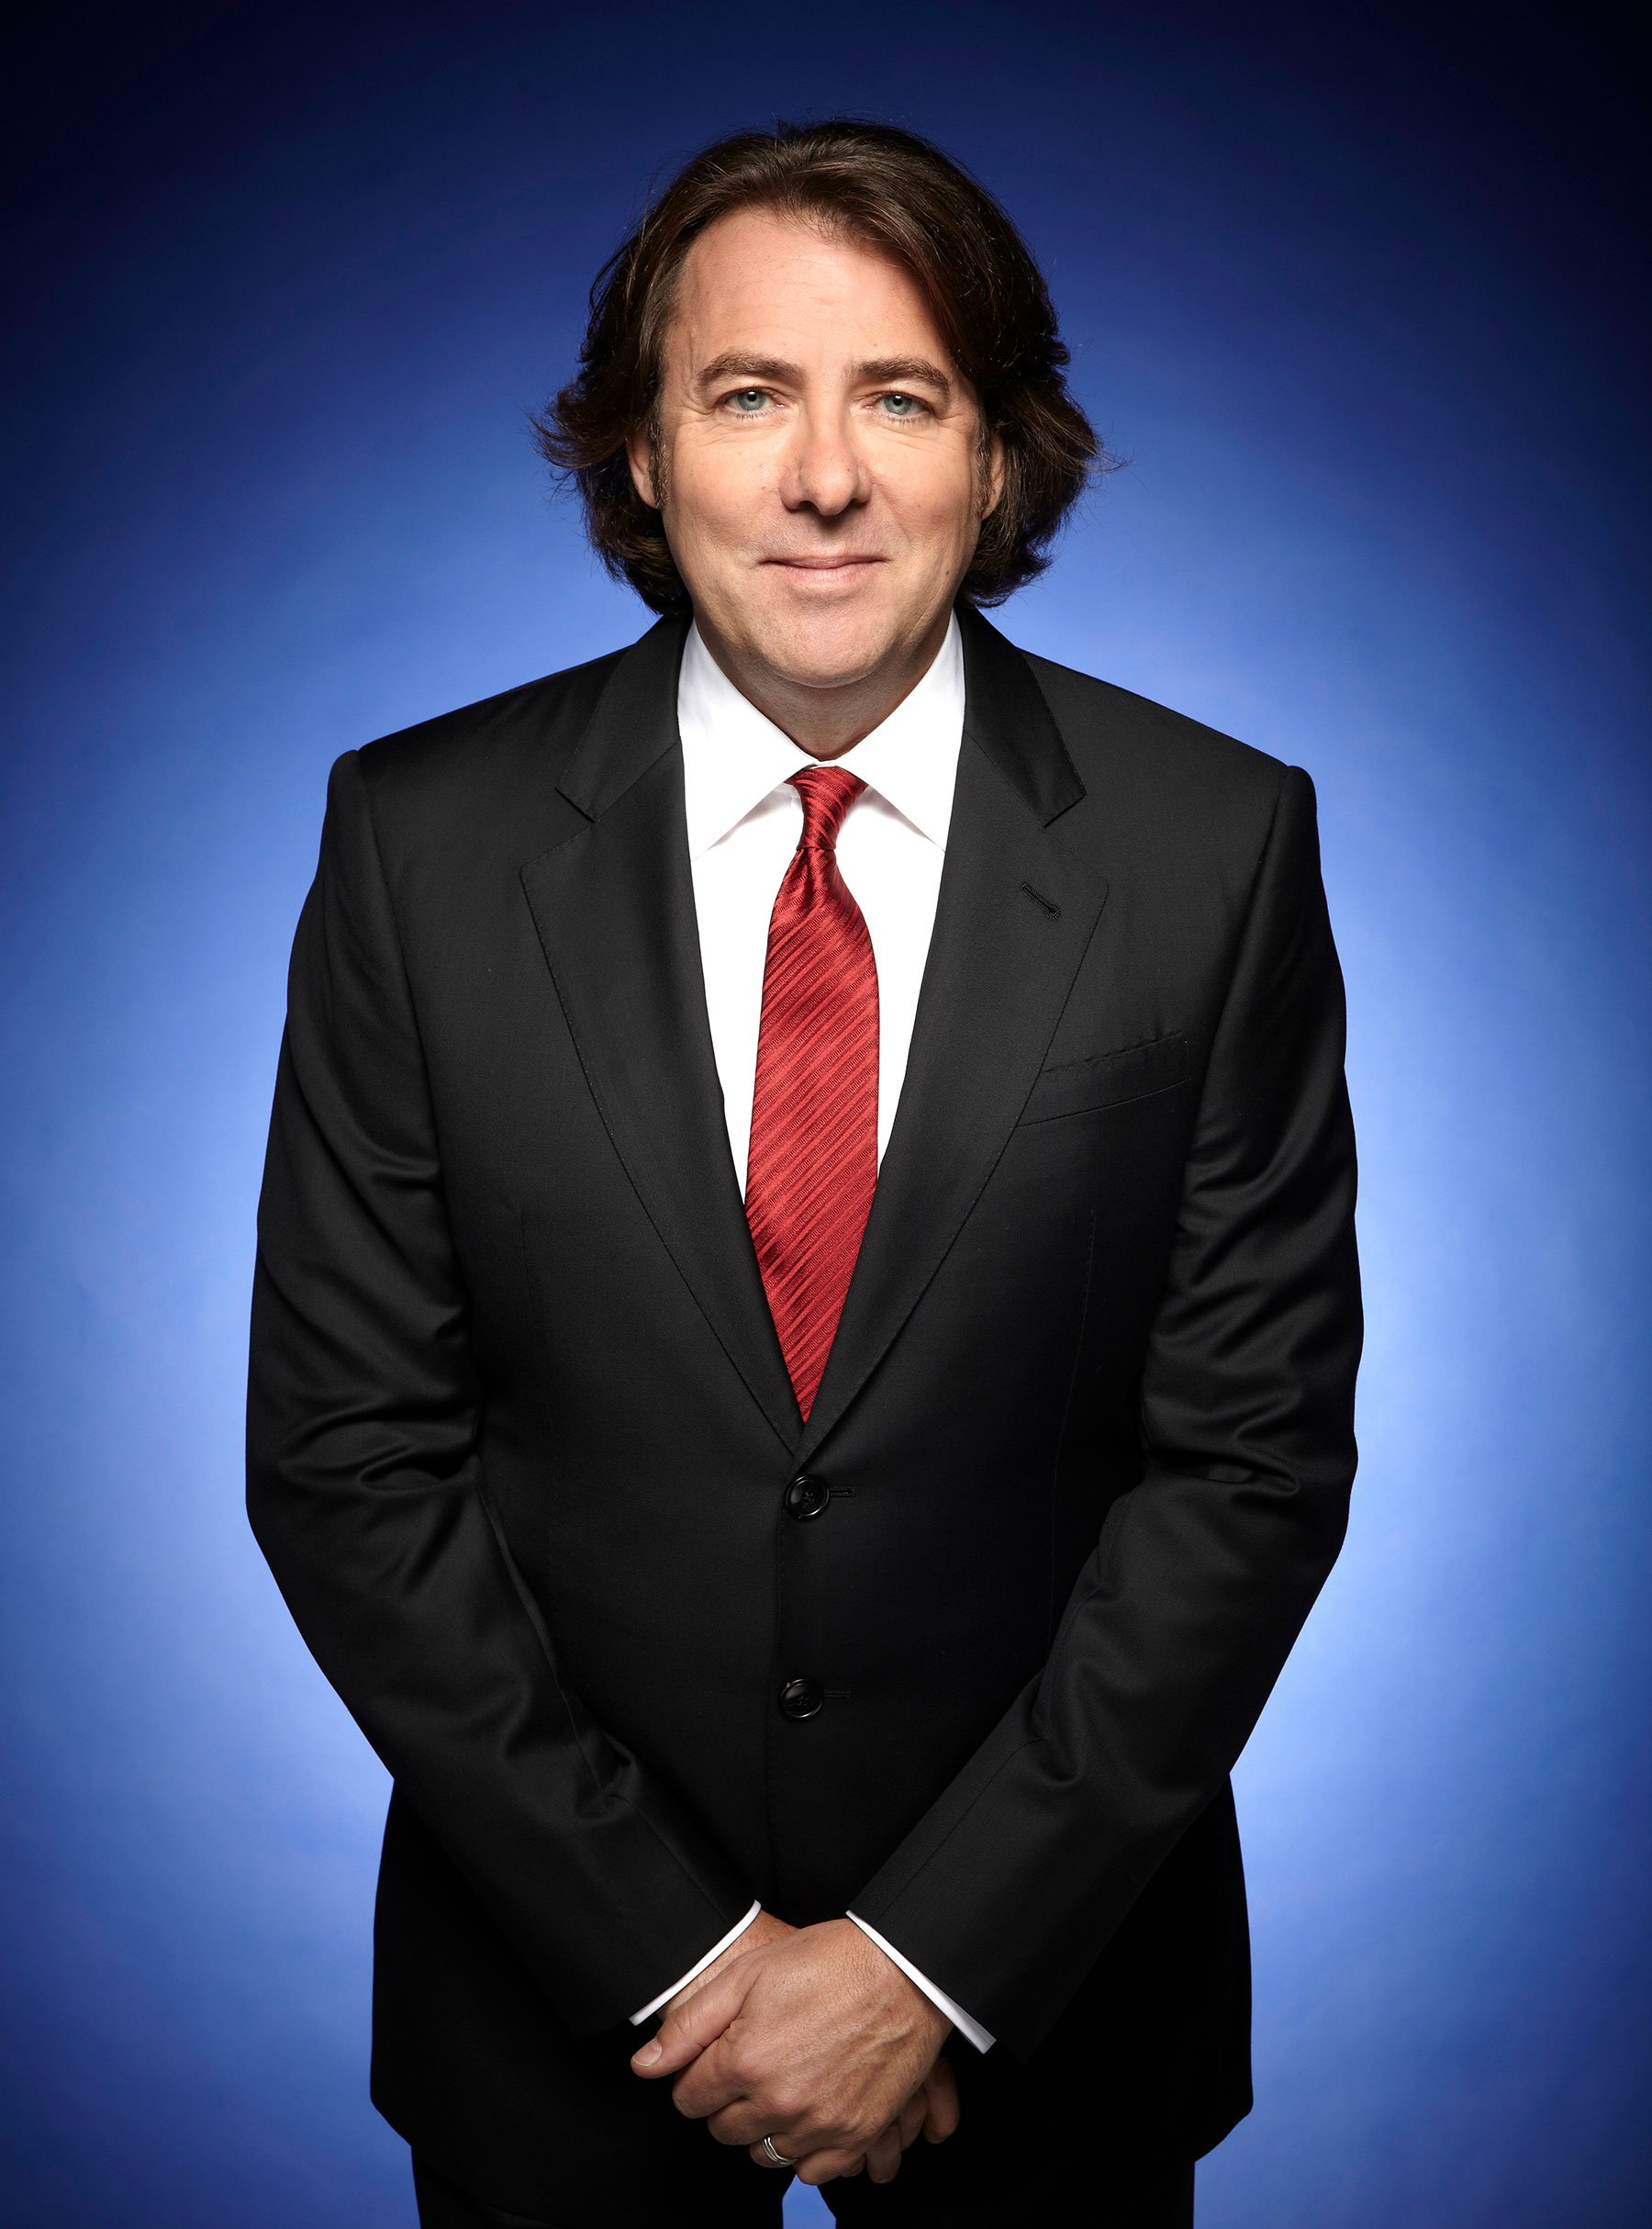 jonathan ross - photo #14